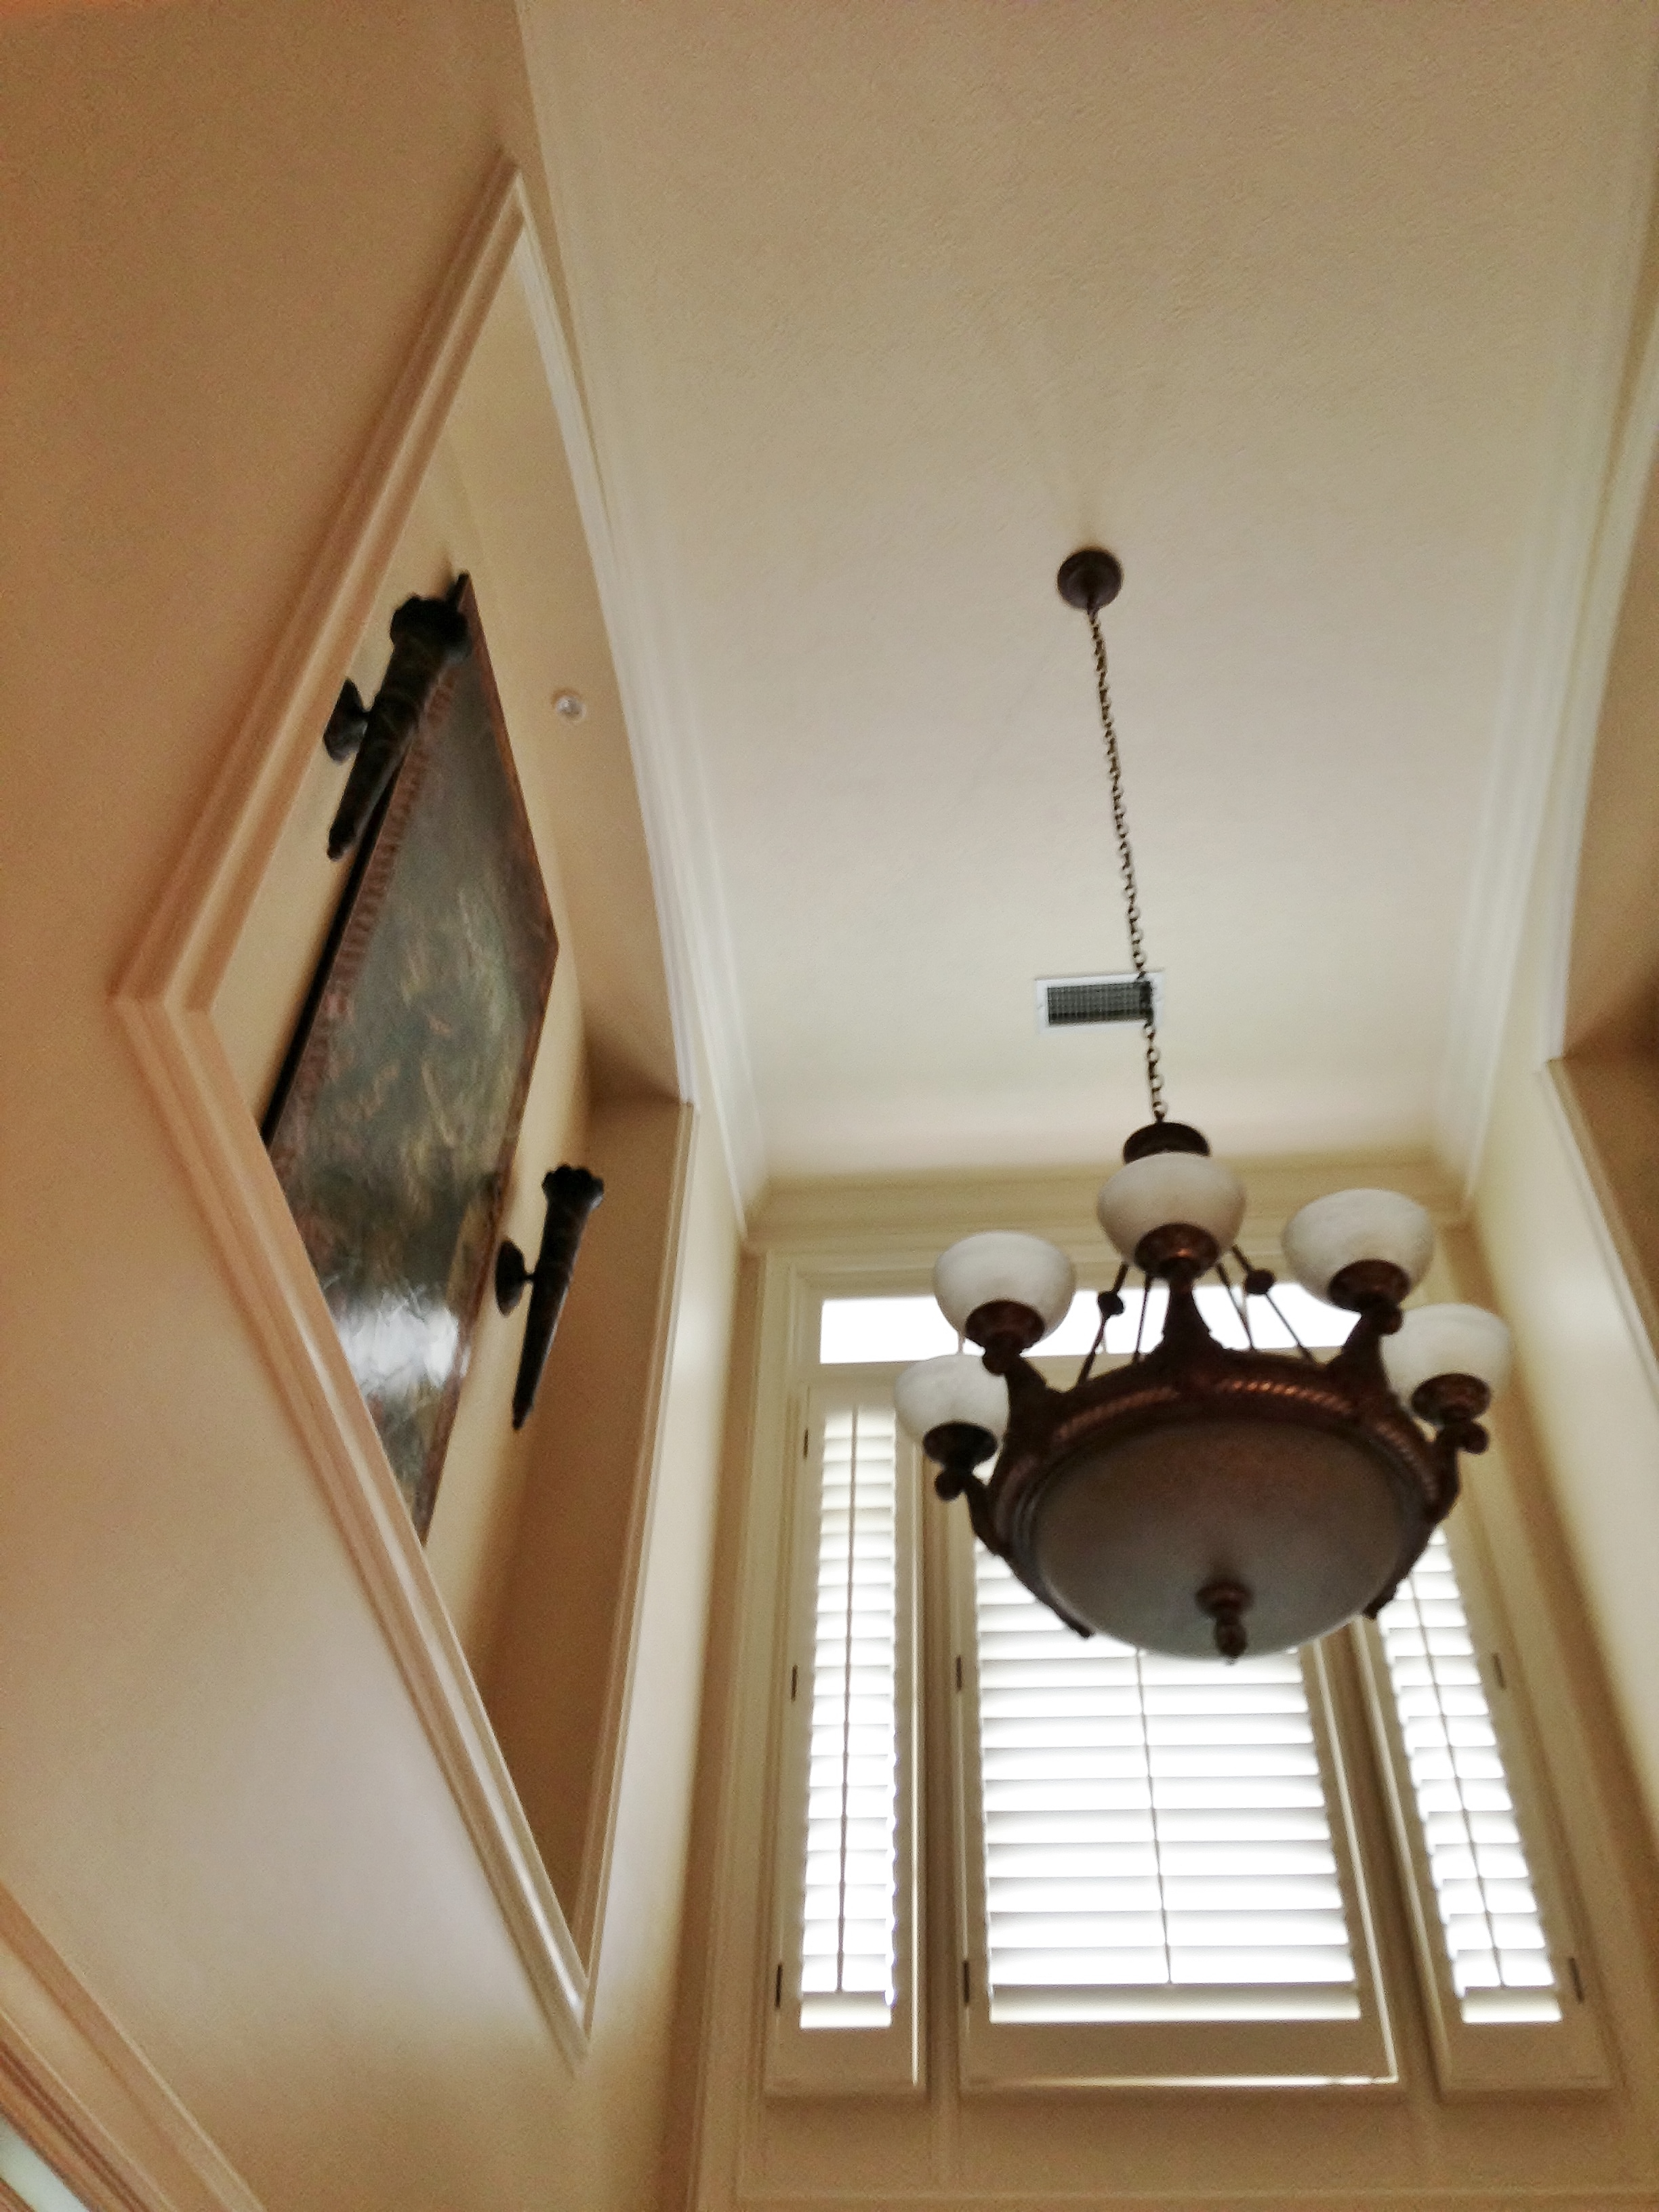 Another high wall niche in an entry hall. Difficult to reach to dust properly. #wallniche